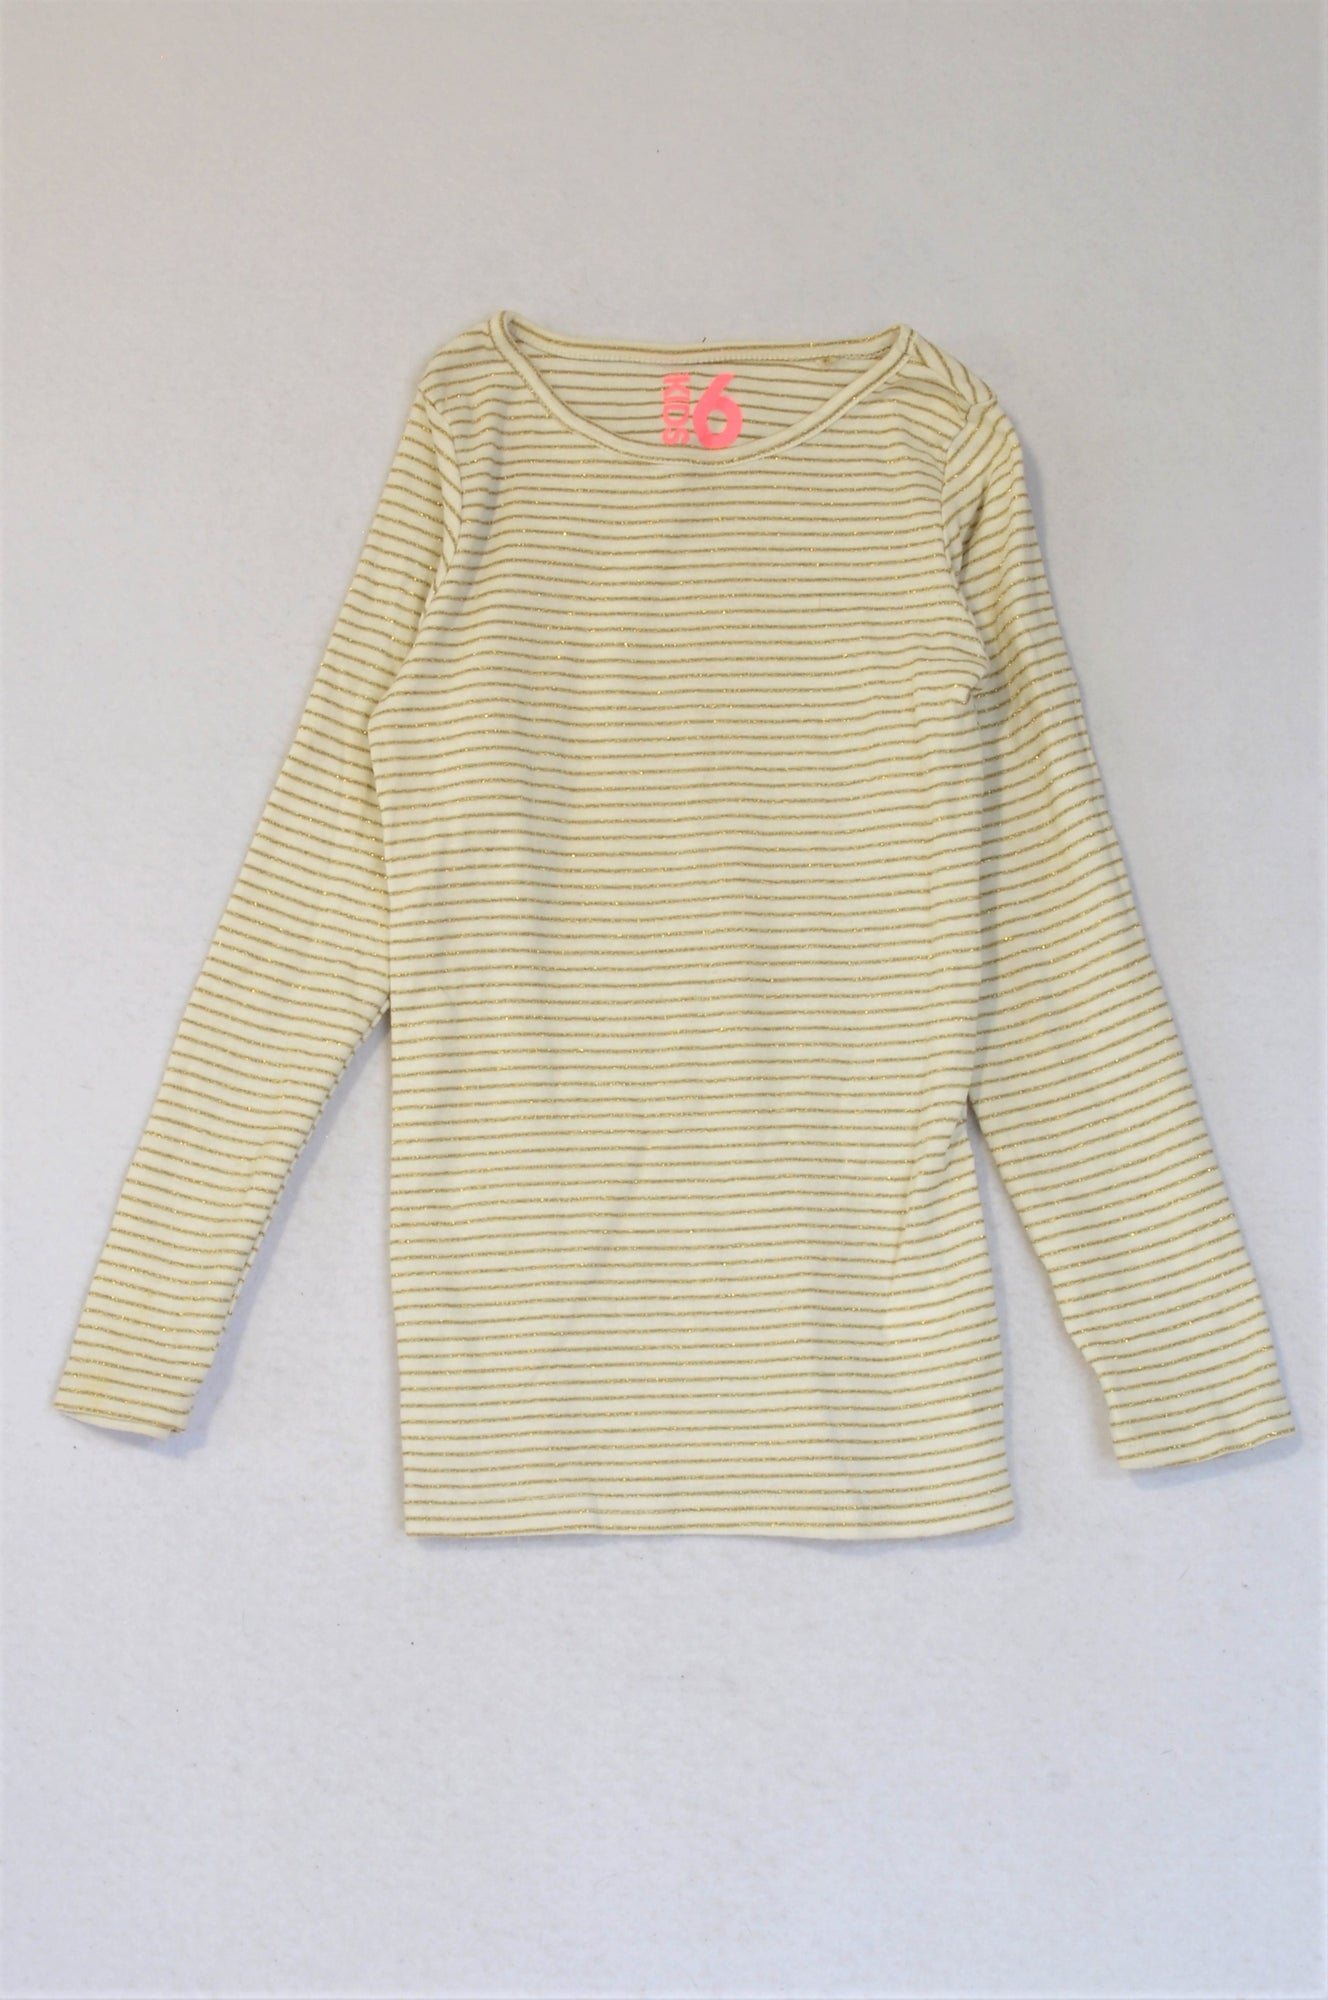 Cotton On White With Gold Stripe Long Sleeve T-shirt Girls 5-6 years